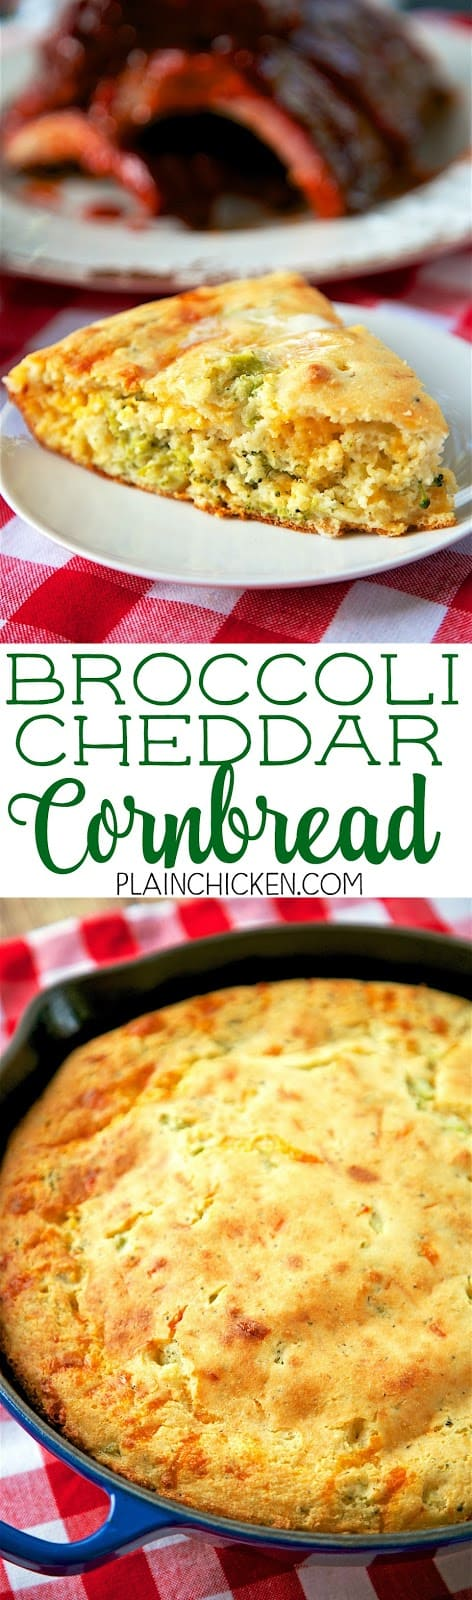 Broccoli Cheddar Cornbread - only 6 ingredients! This stuff is crazy good!! Cornbread mix, flour, buttermilk, frozen chopped broccoli, cheddar and oil. Bake in an iron skillet for the best cornbread you've ever eaten! Took this to a BBQ and there were no leftovers!